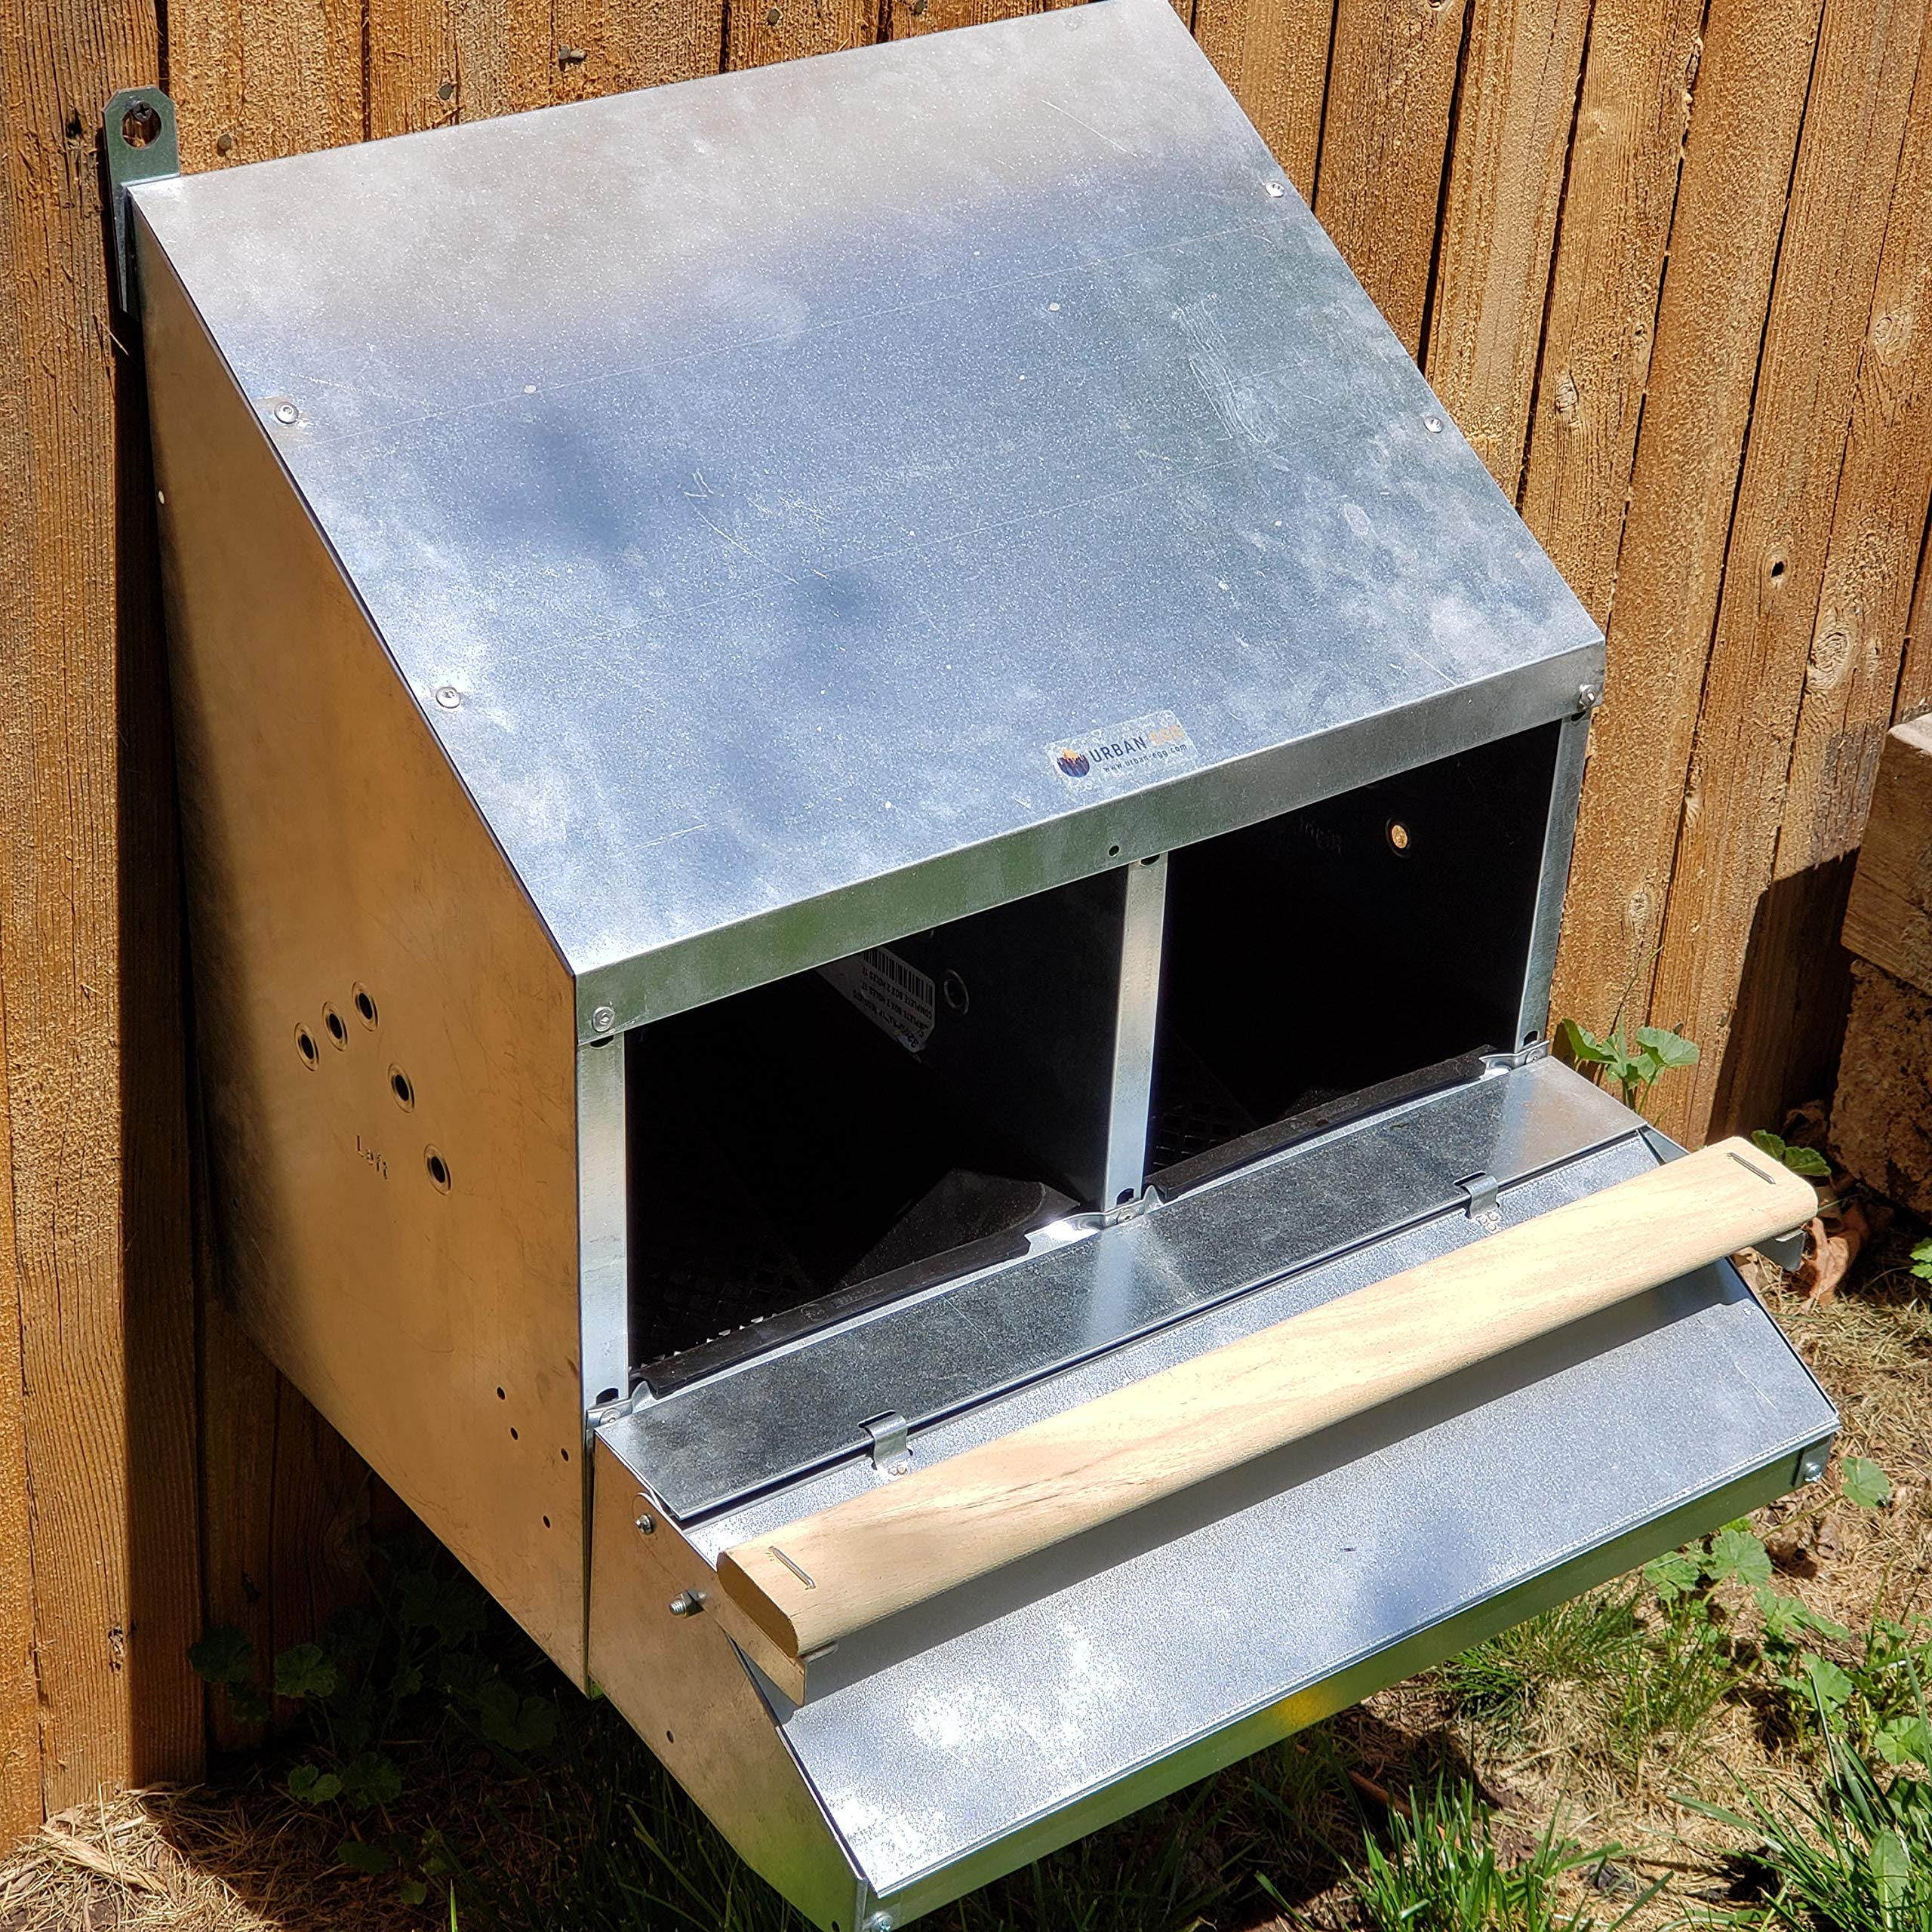 SKA Urban-Egg Roll Away Chicken Nest Box with Foldable Perch & Chute - Zinc-Plated Steel - 2-Hole by SKA